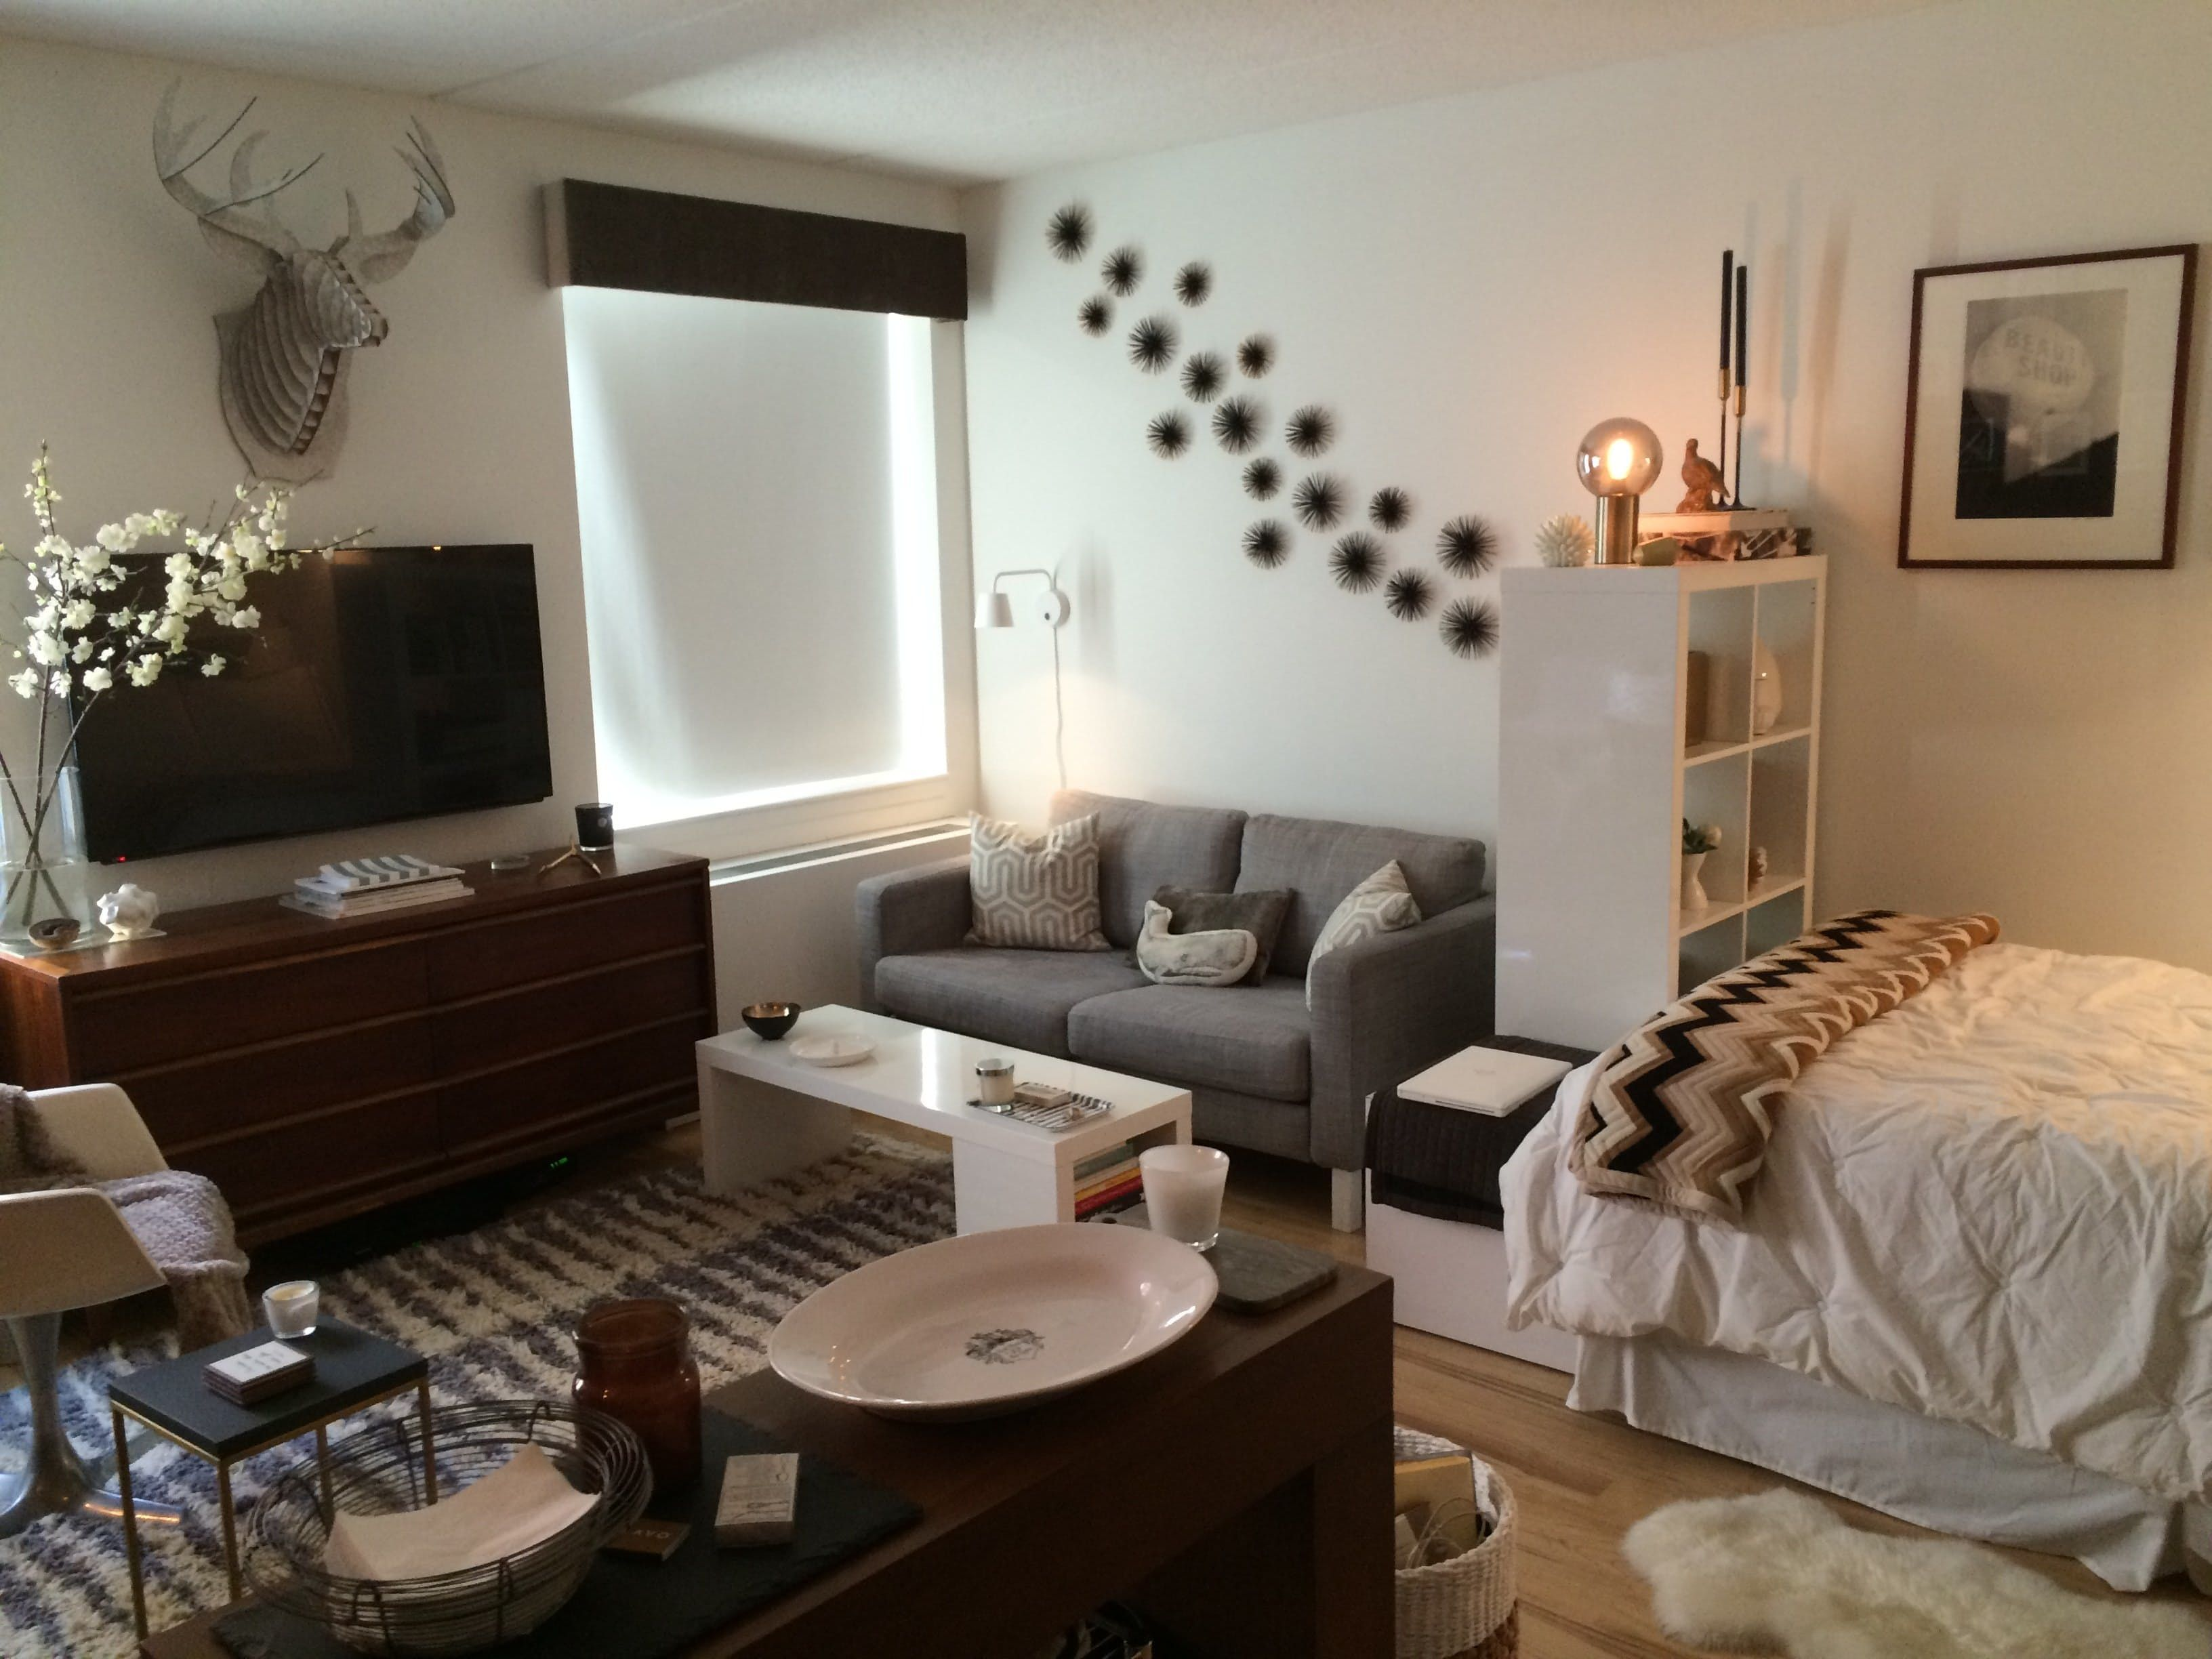 studio apartment furniture. 5 Studio Apartment Layouts That Work \u2014 Renters Solutions Studio Apartment Furniture